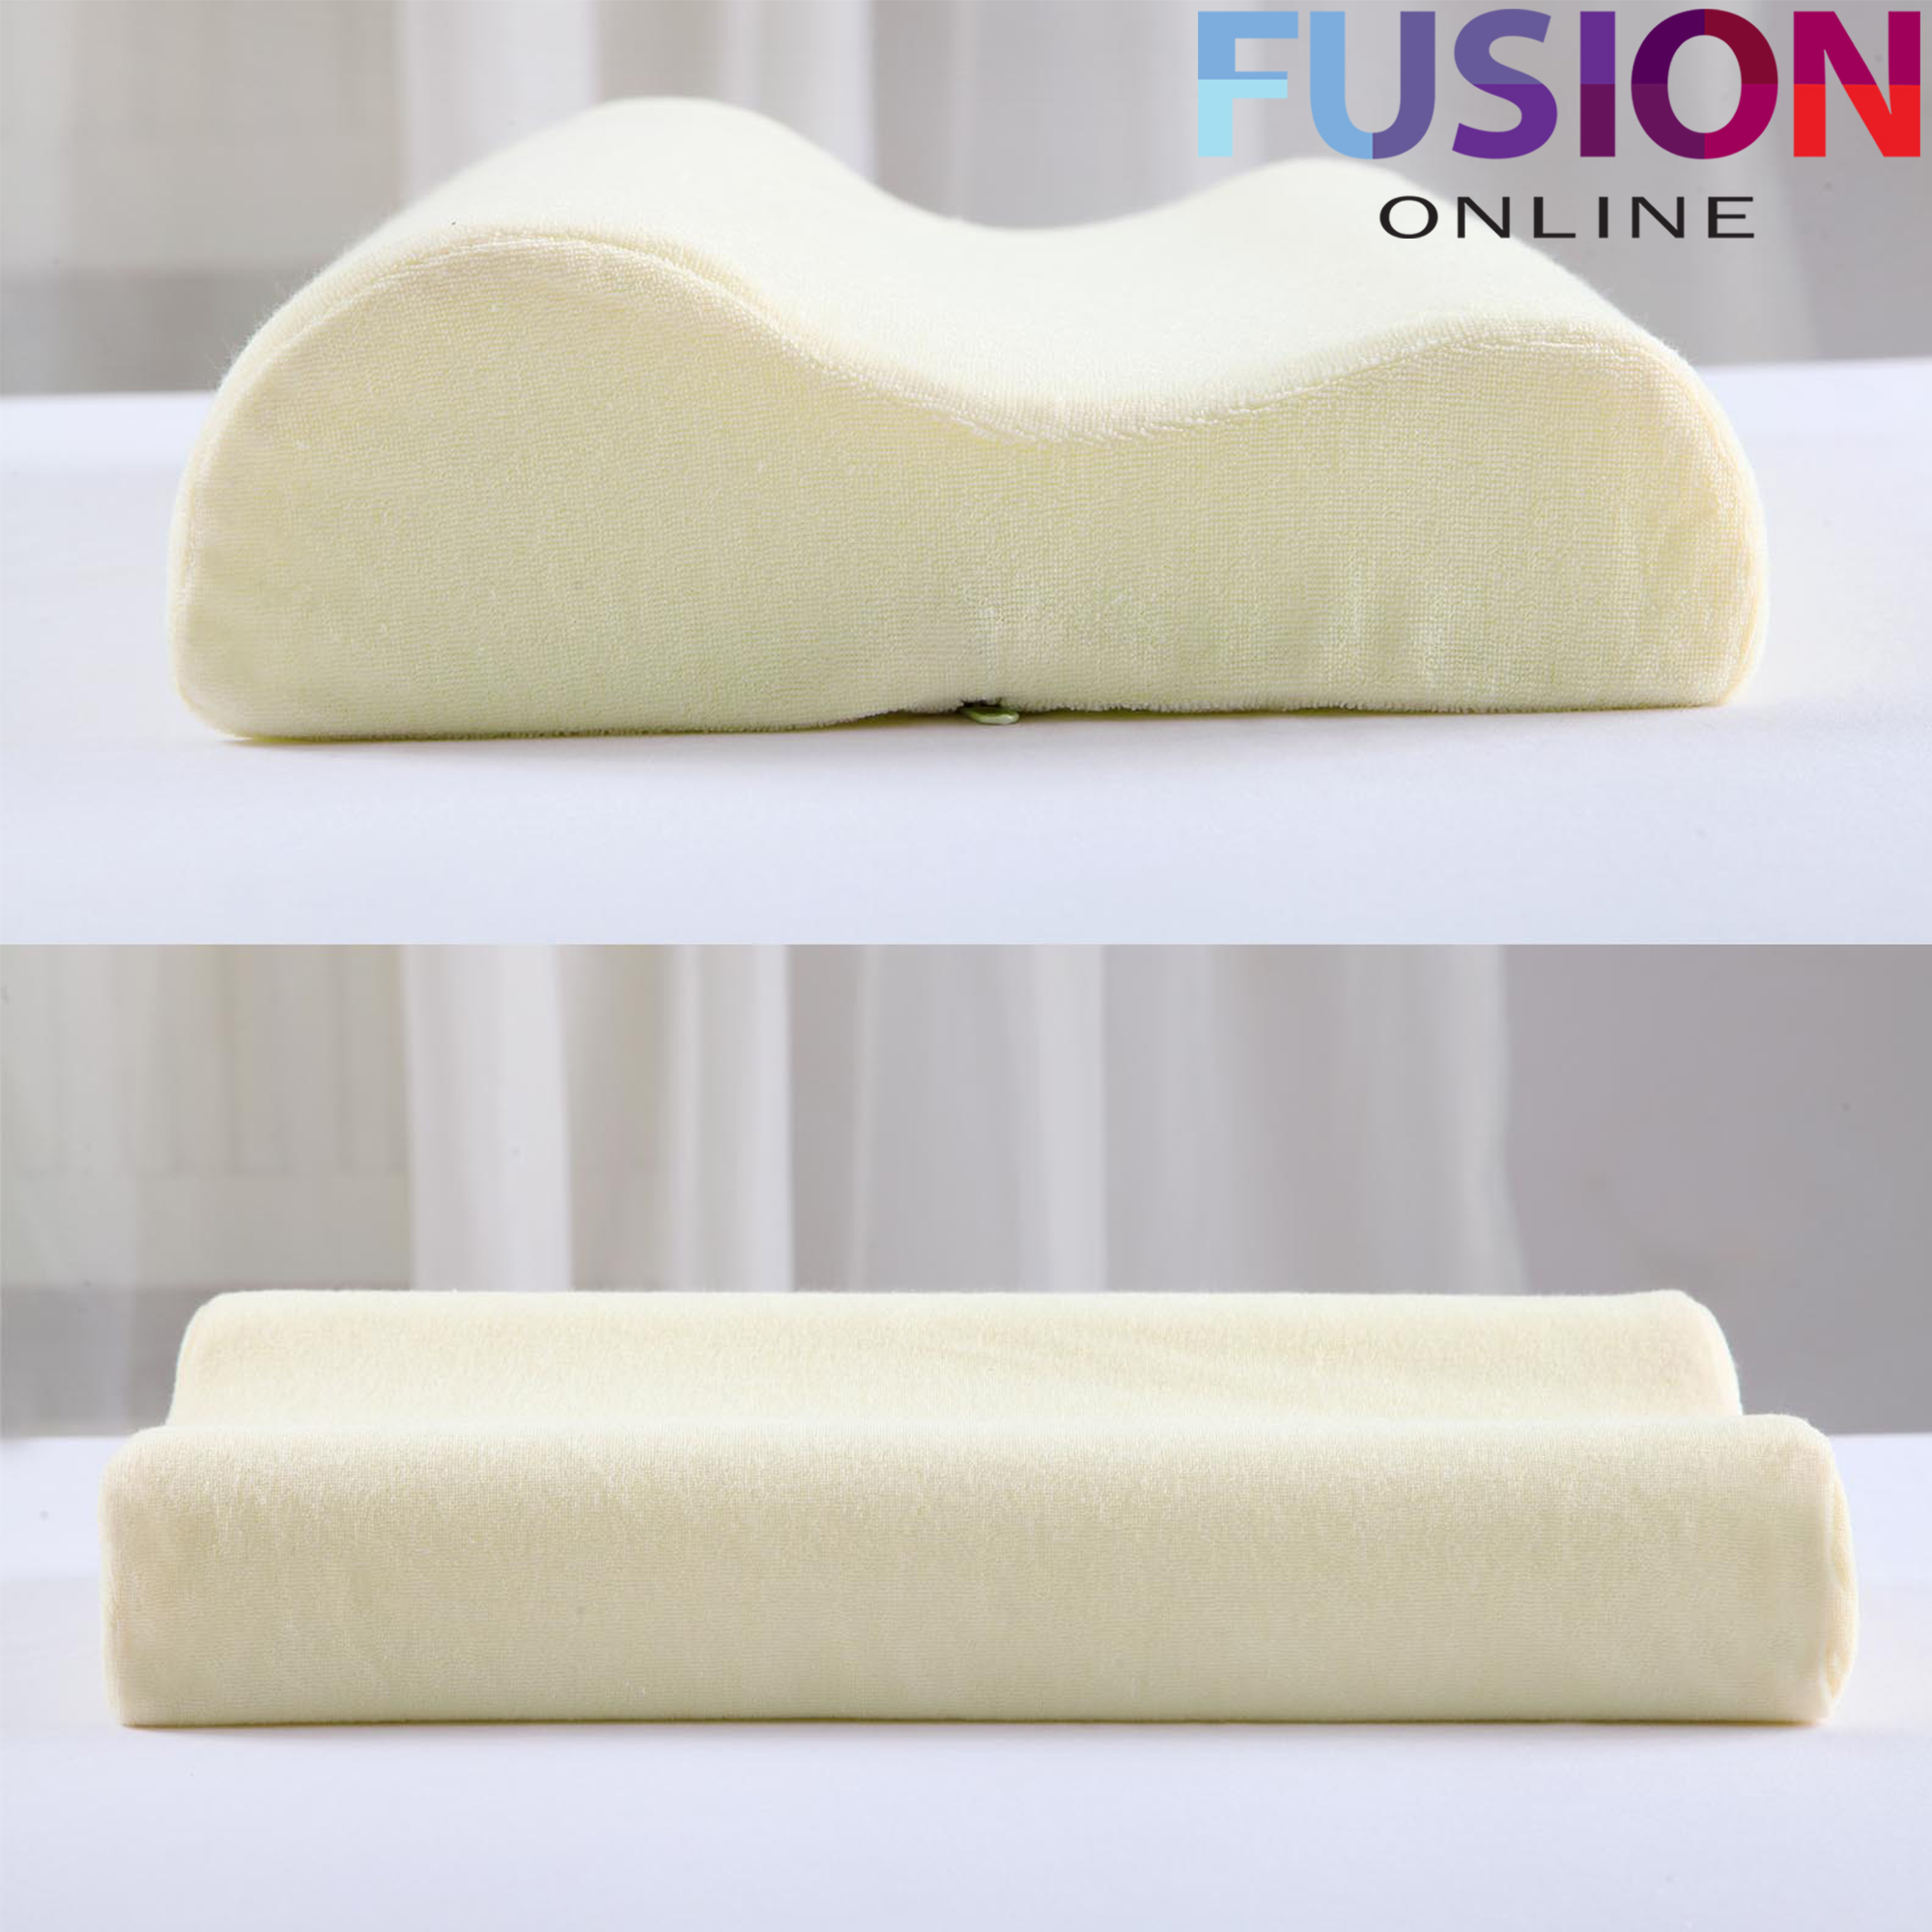 contour memory foam pillow orthopaedic firm head neck back support pillows ebay. Black Bedroom Furniture Sets. Home Design Ideas